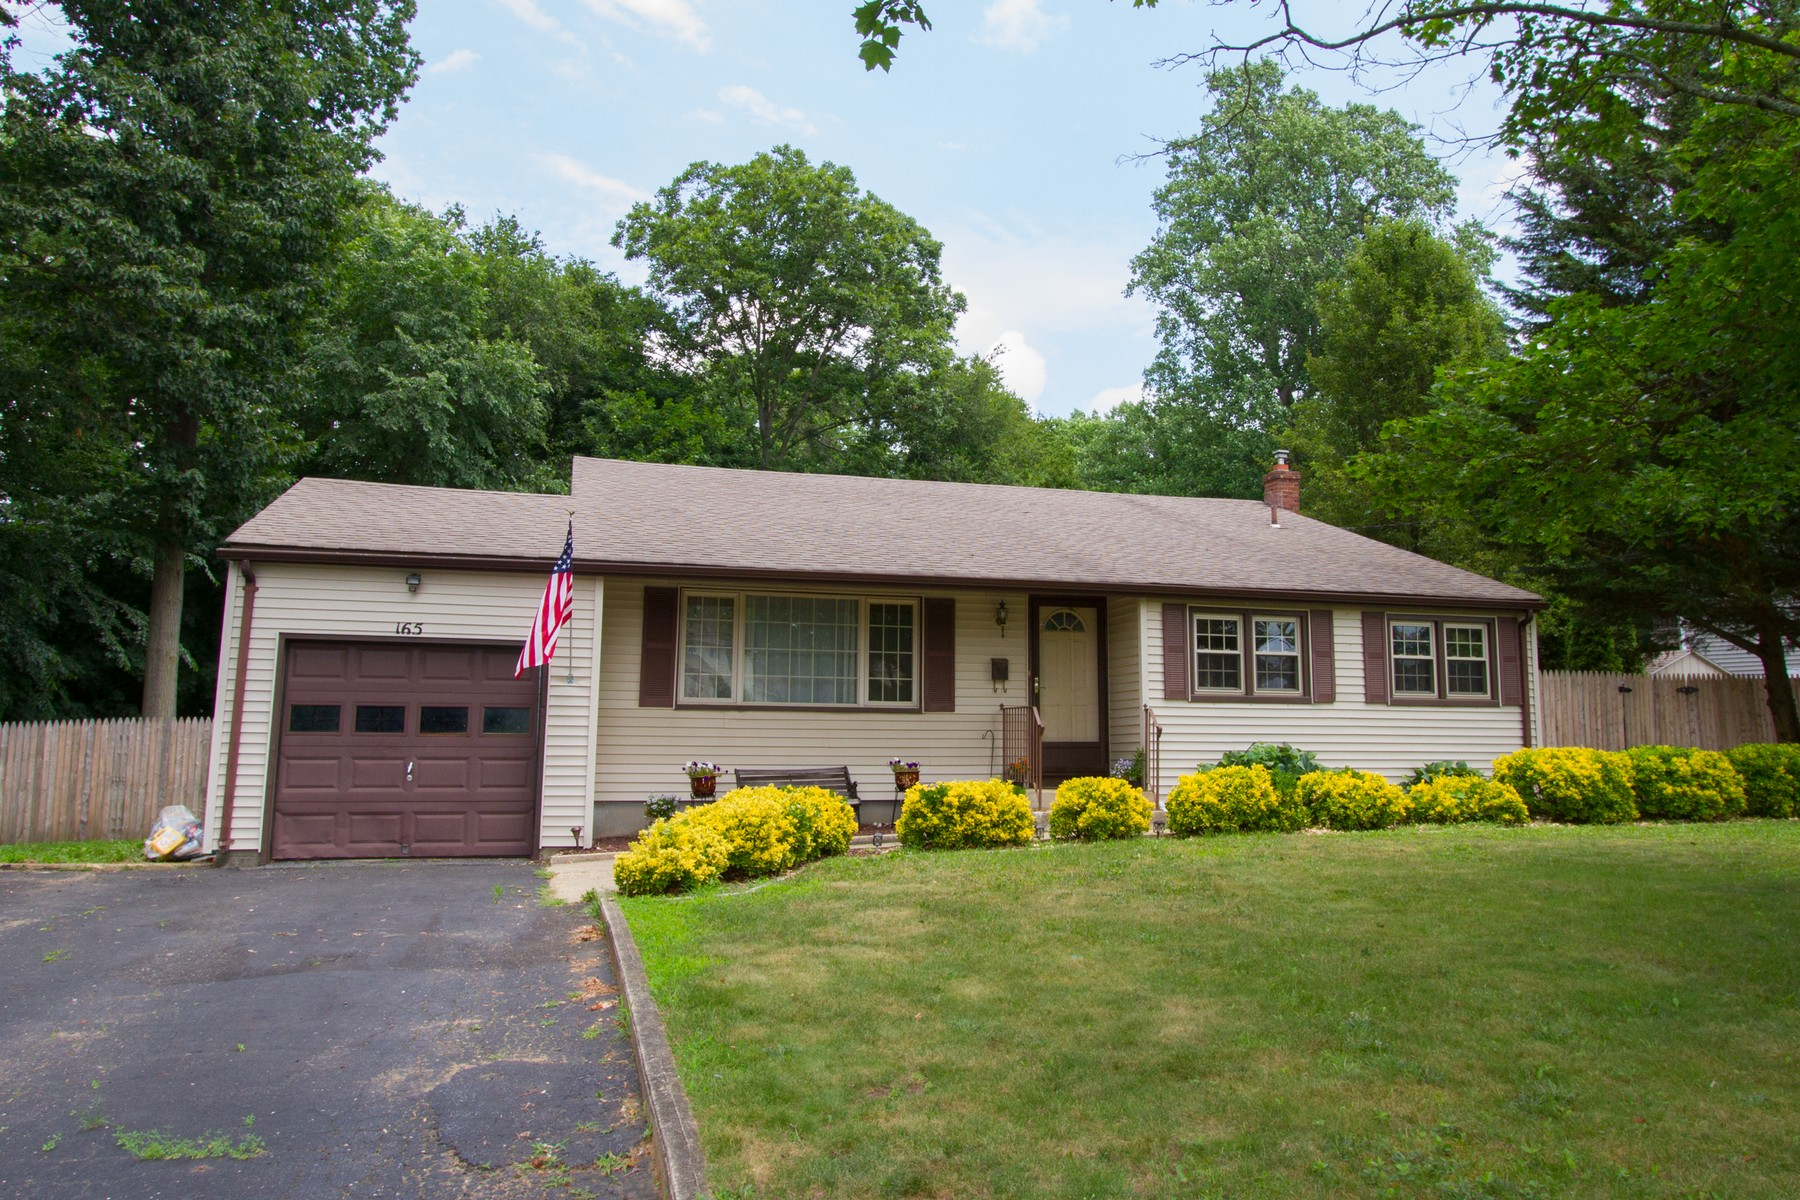 Single Family Home for Sale at Lincroft 165 Harvey Ave Lincroft, New Jersey, 07738 United States